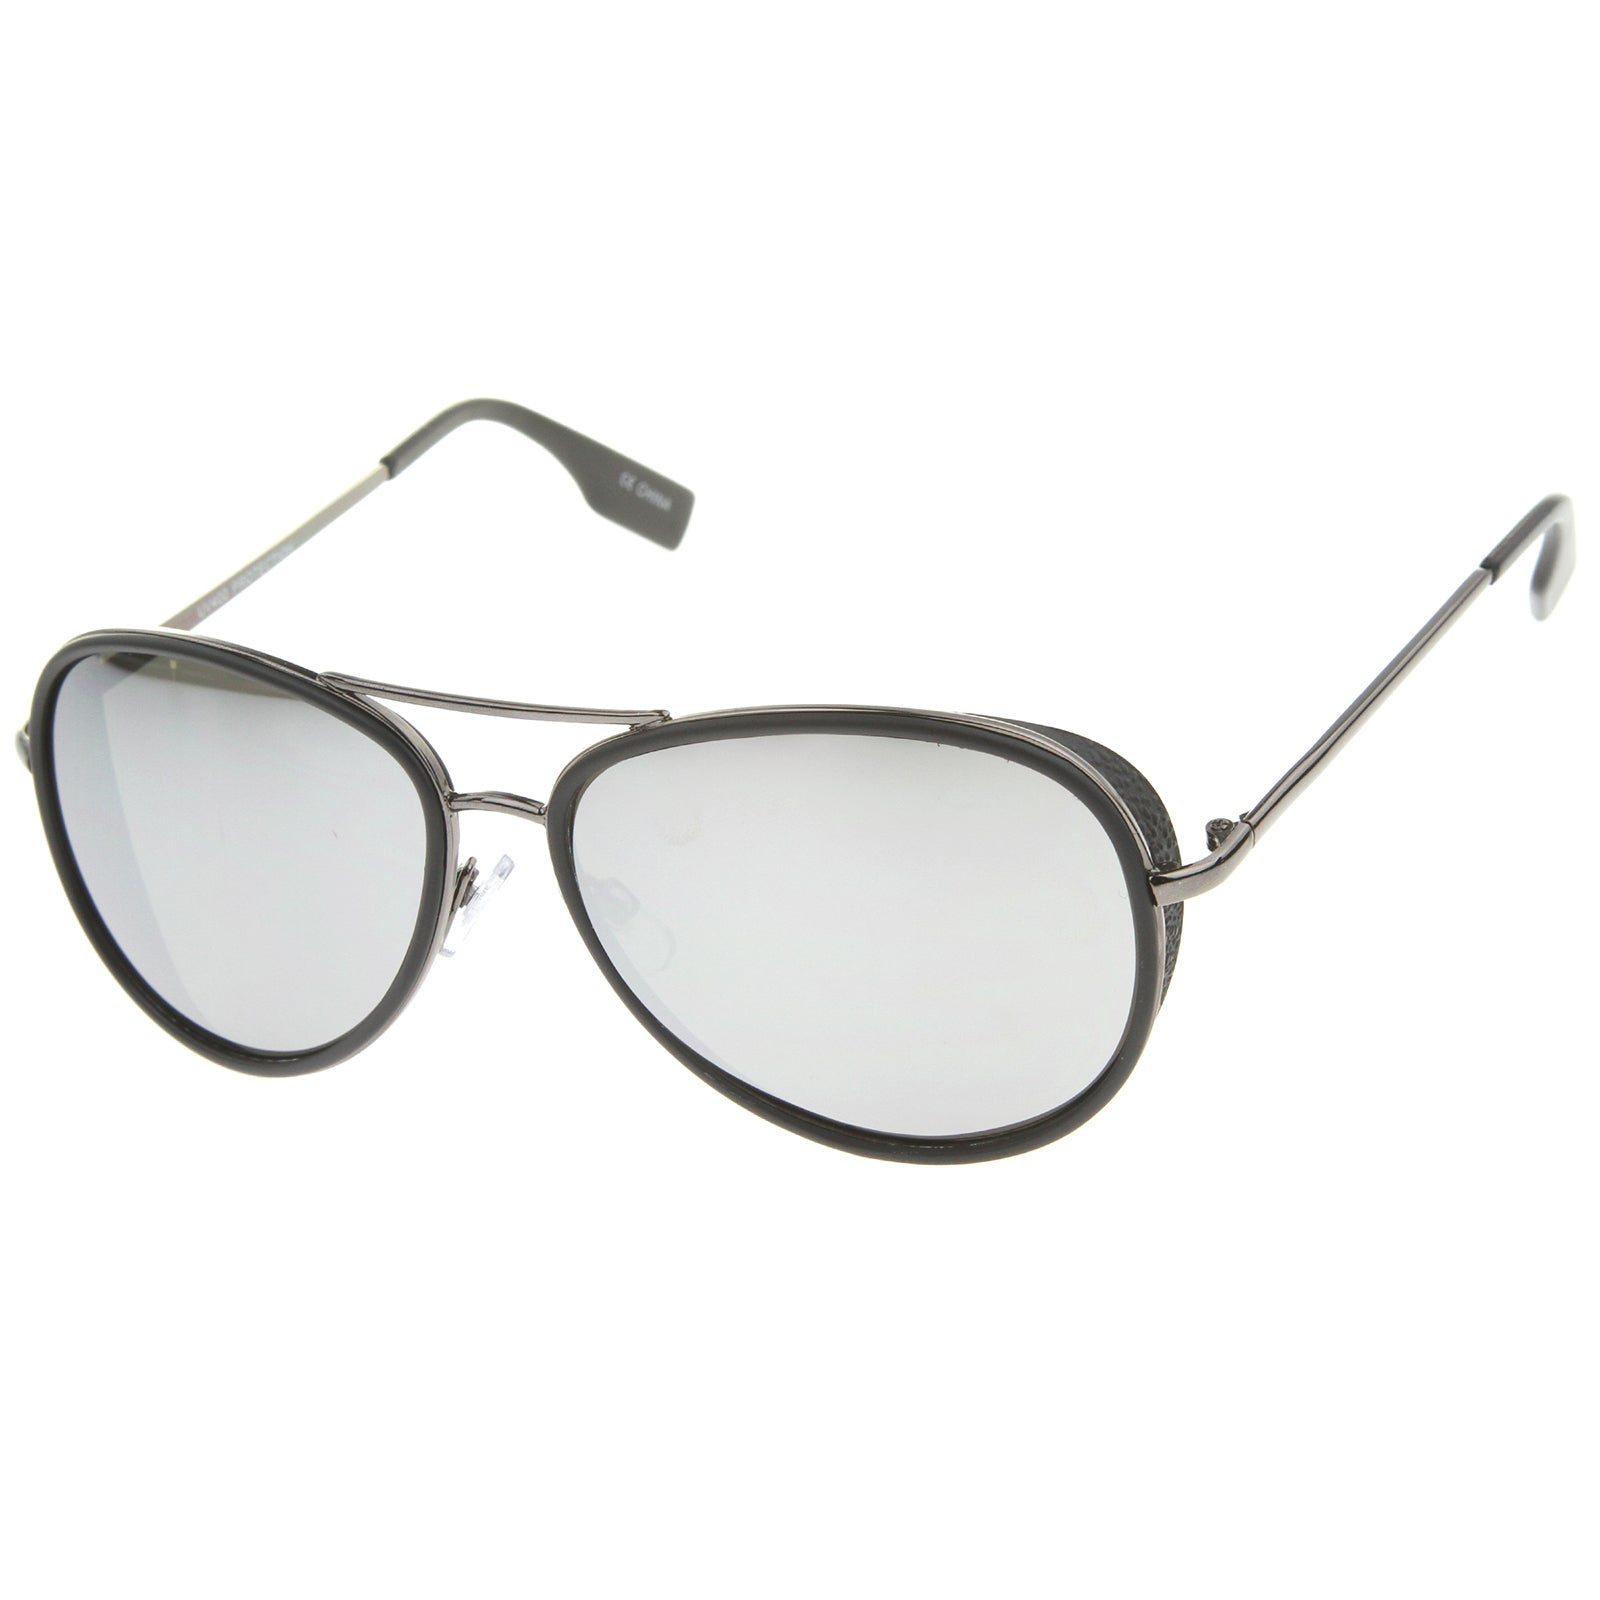 Mens Aviator Sunglasses With UV400 Protected Mirrored Lens - sunglass.la - 14